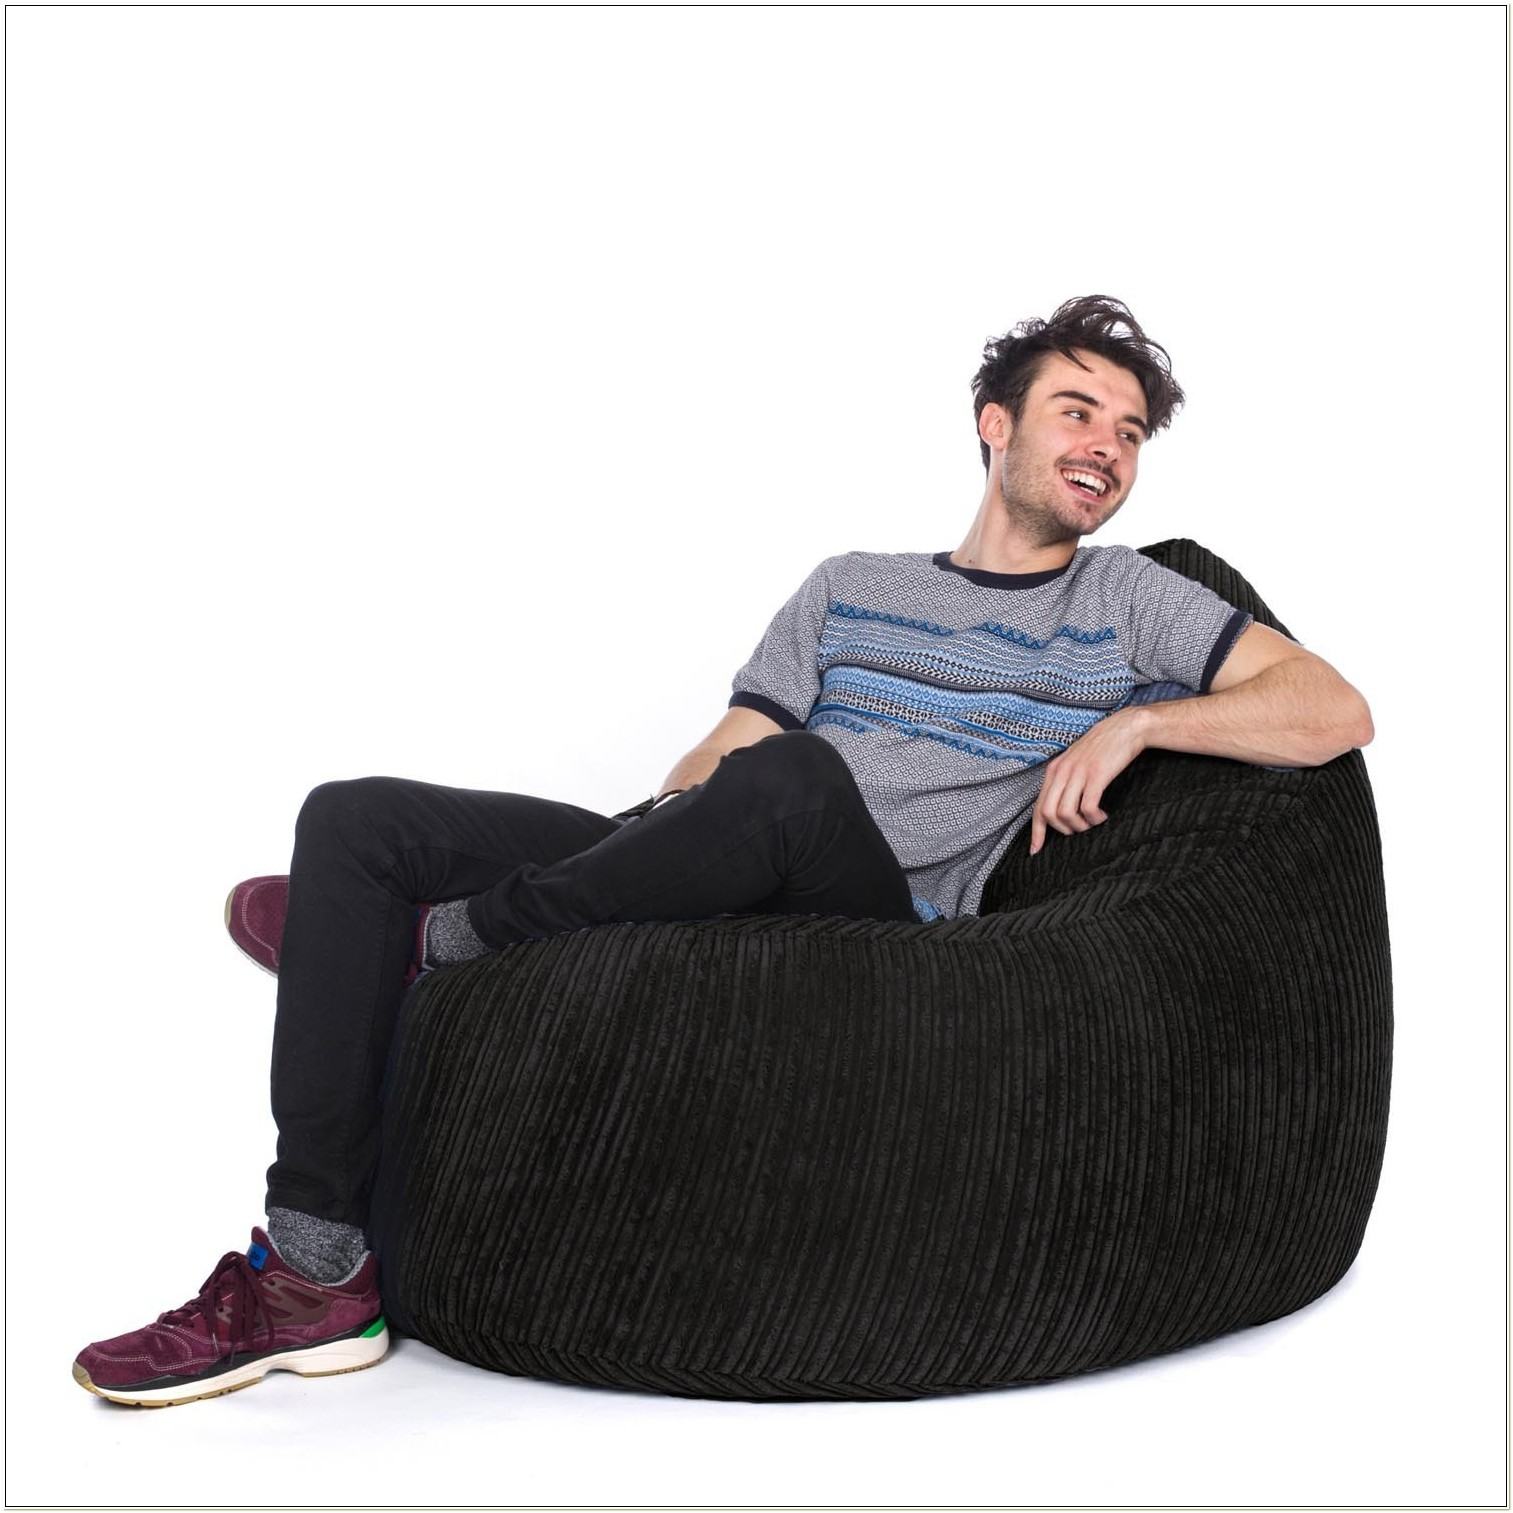 Black Corduroy Bean Bag Chair